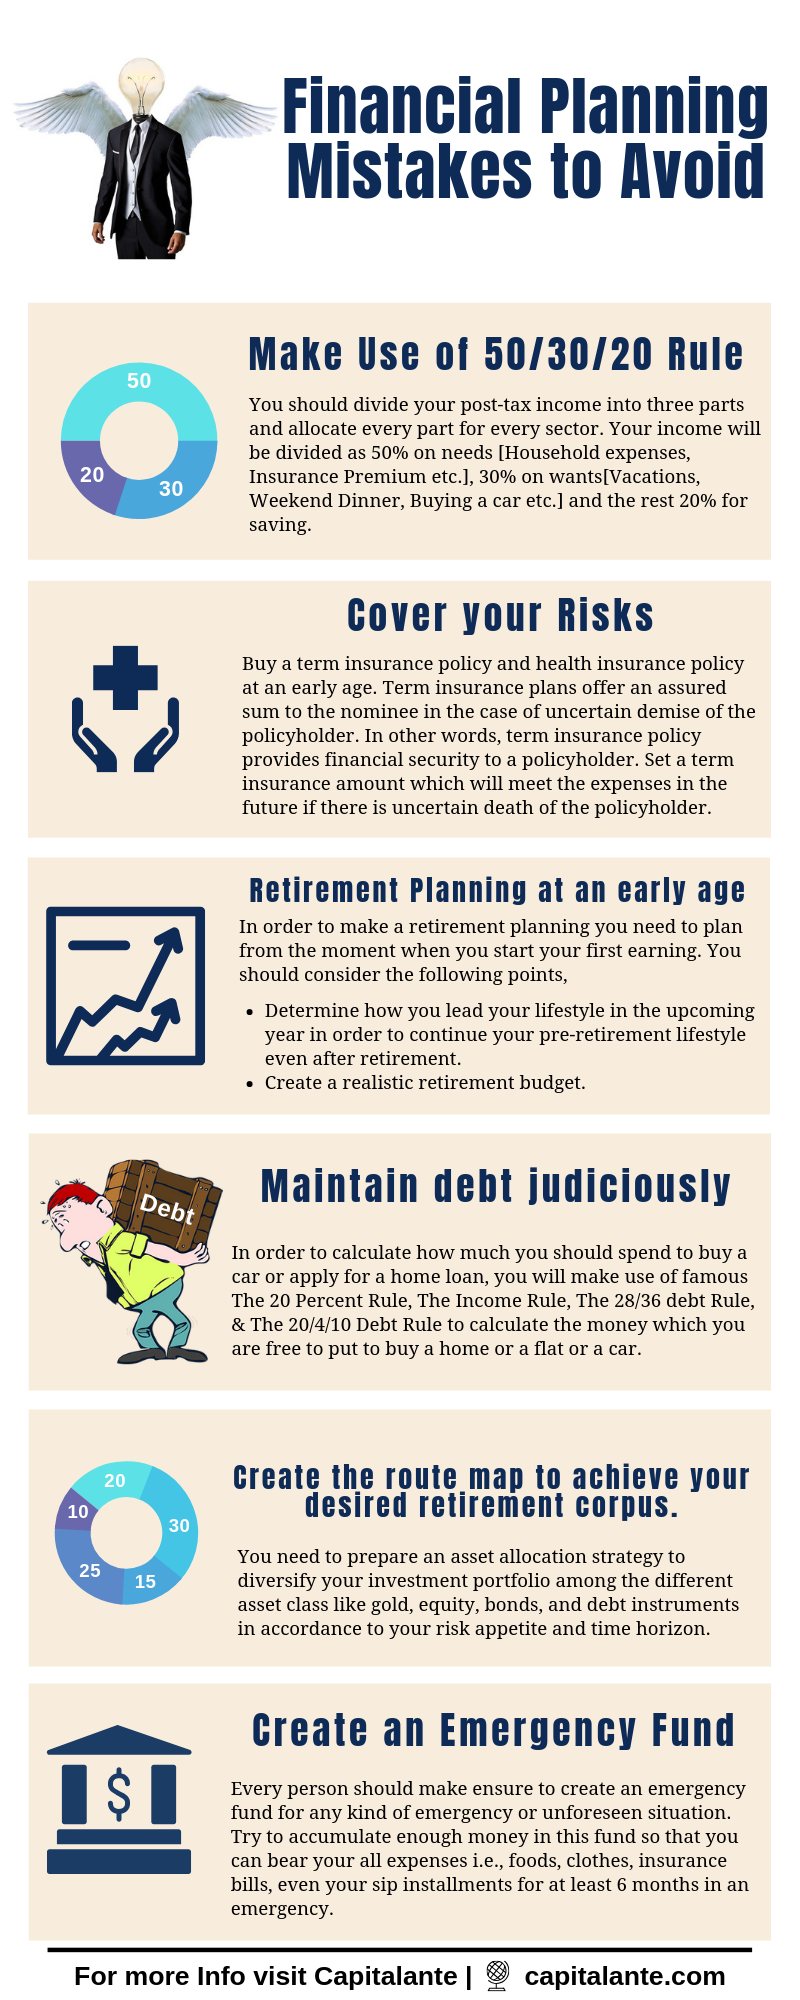 Financial planning mistakes to avoid